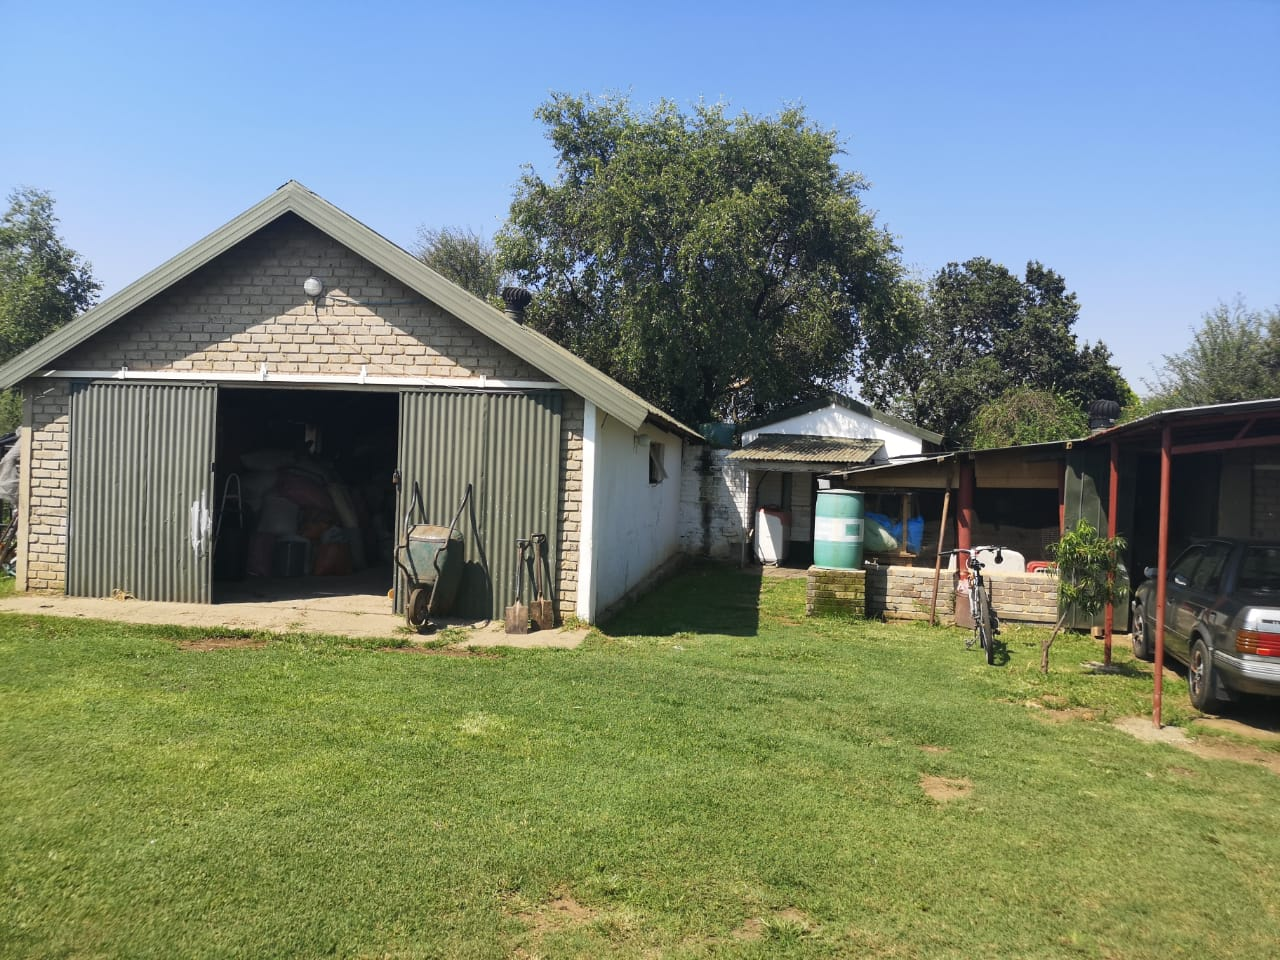 2.3 Ha Plot for Sale in Koppies Free State